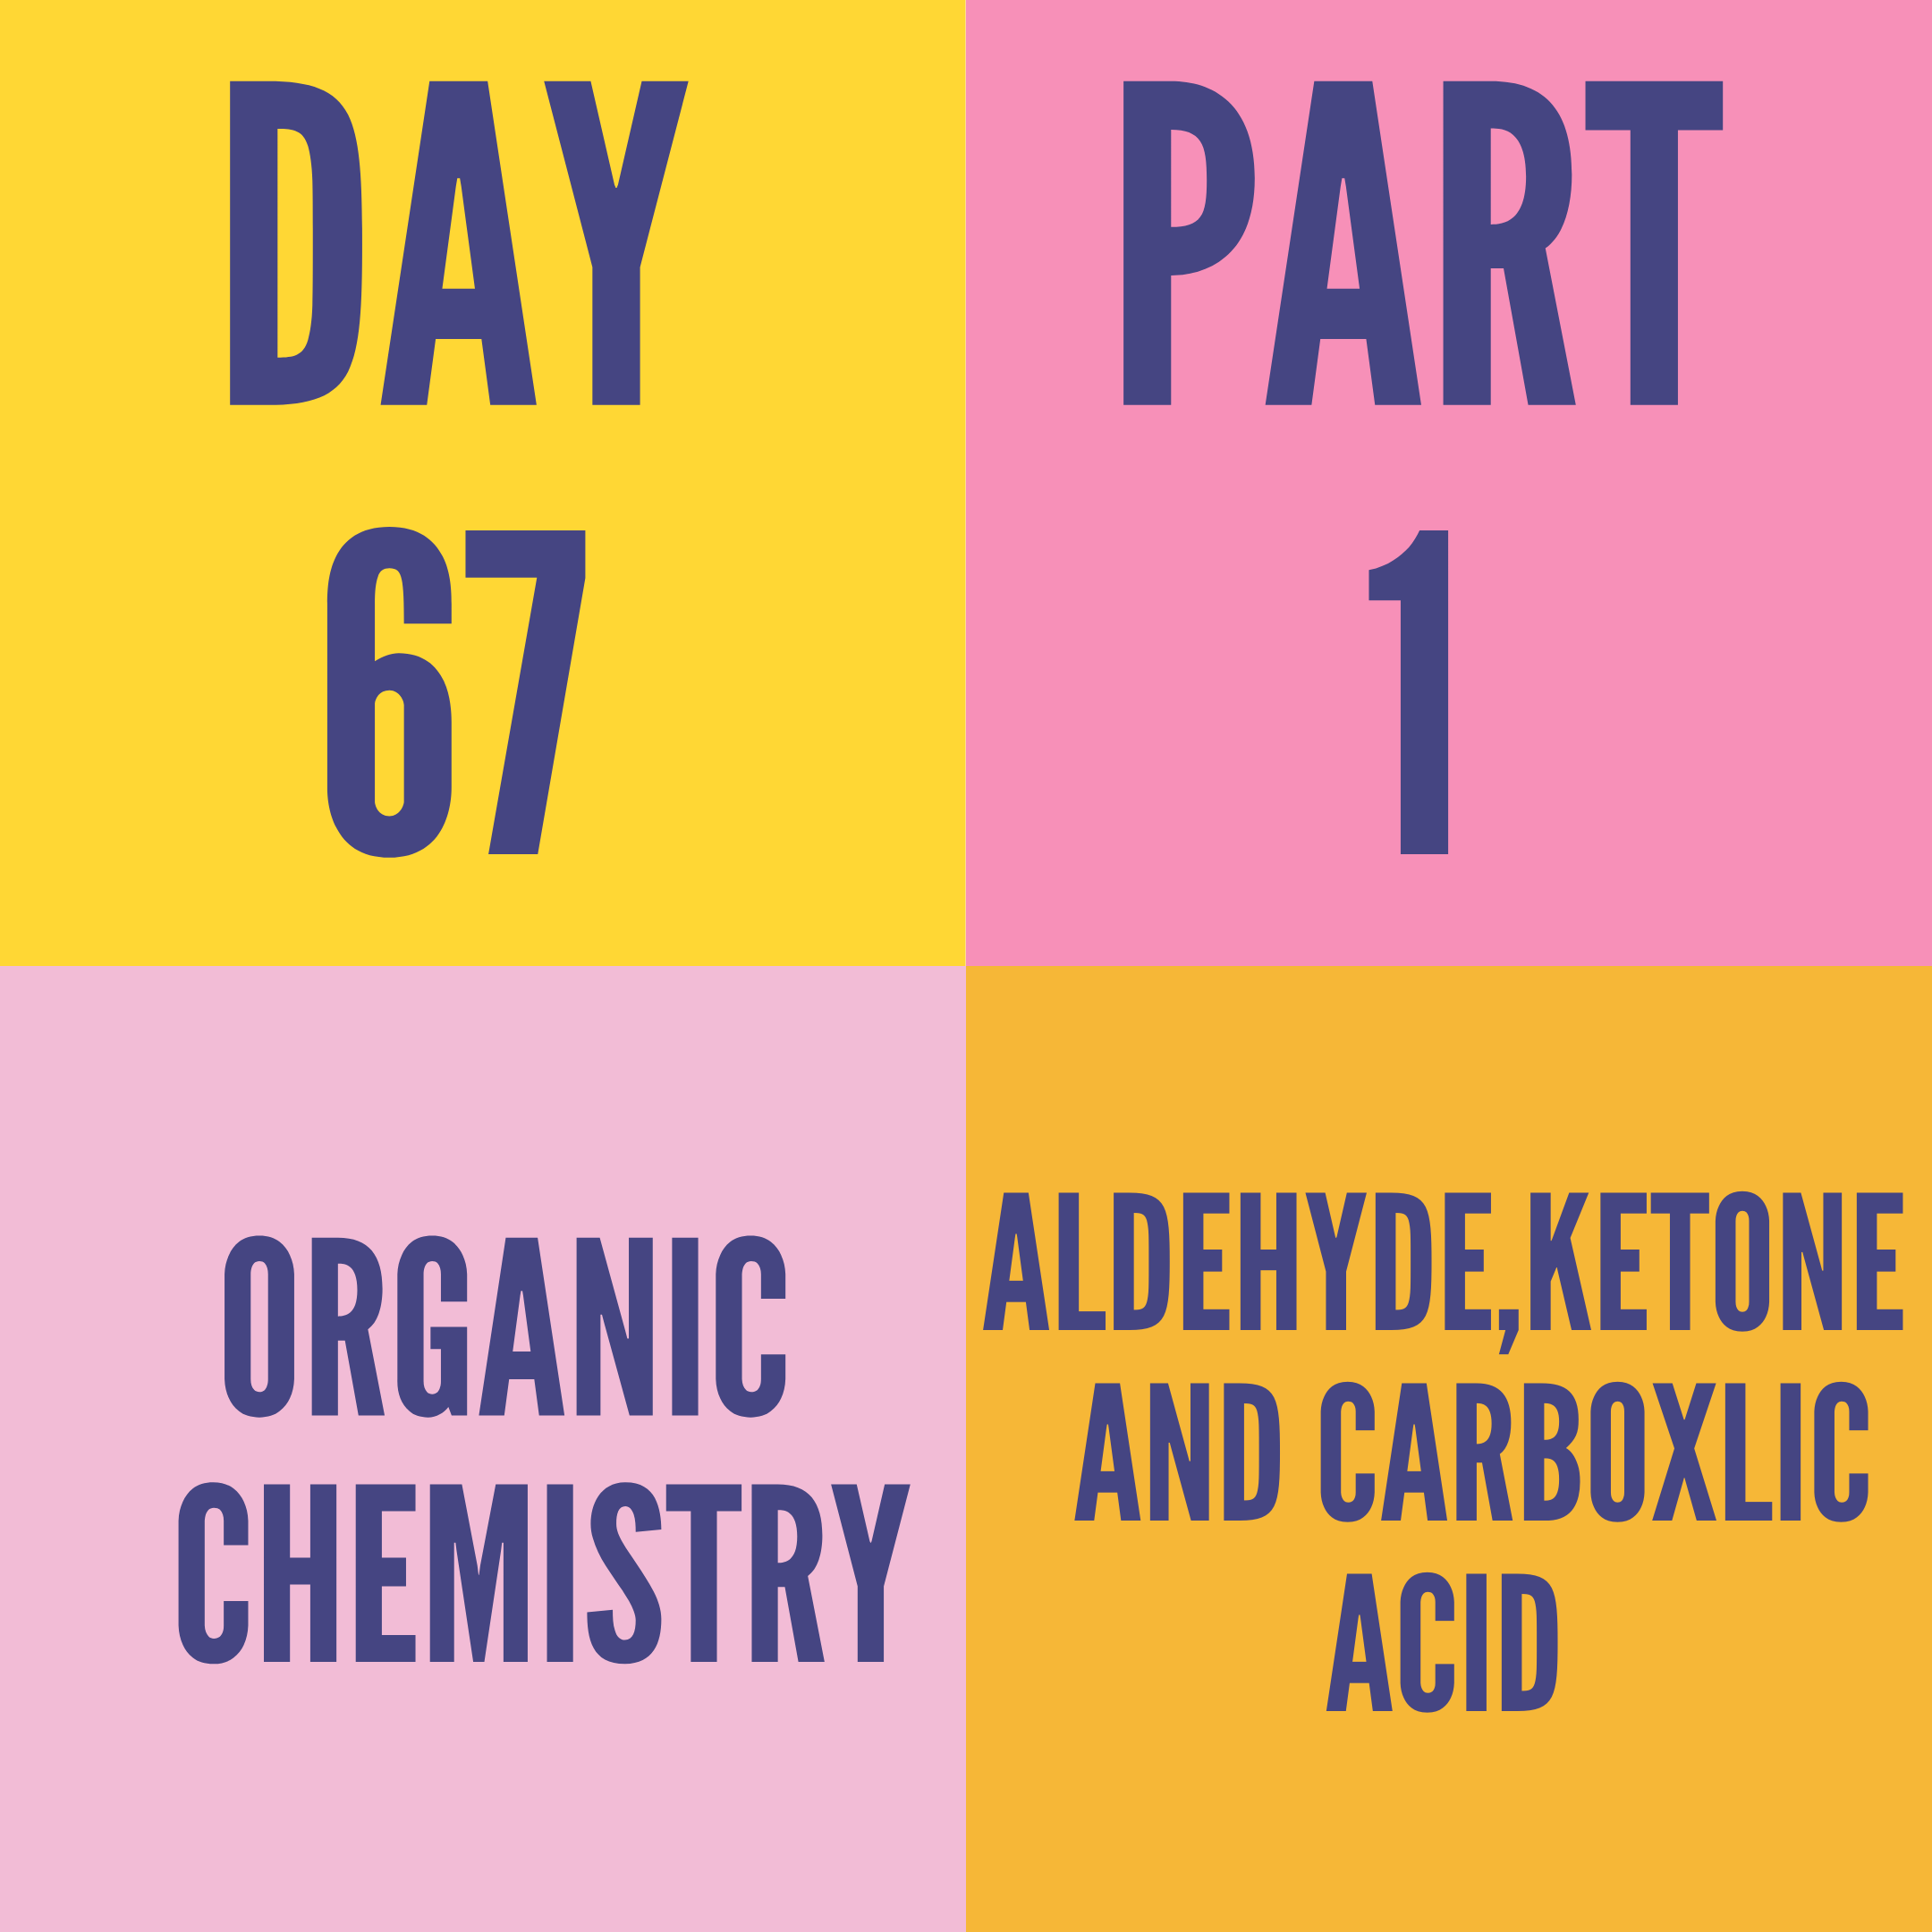 DAY-67 PART-1 ALDEHYDE,KETONE AND CARBOXLIC ACID